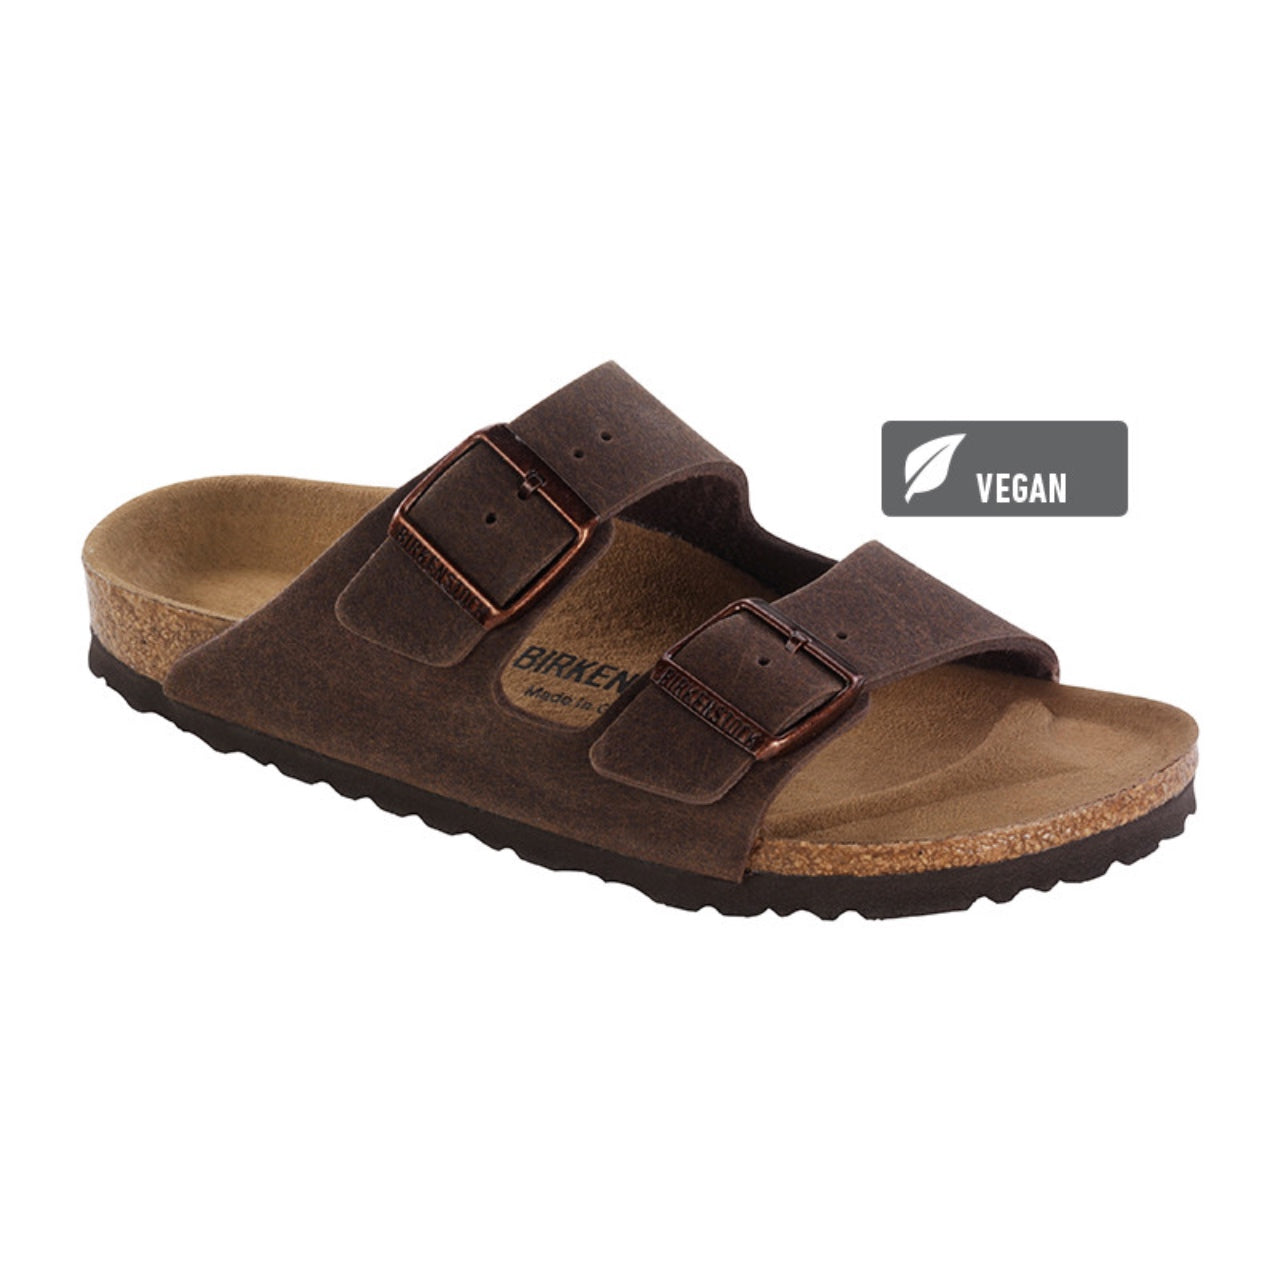 Birkenstock Vegan Arizona Sandals -Cocoa Brown (Microfibre)